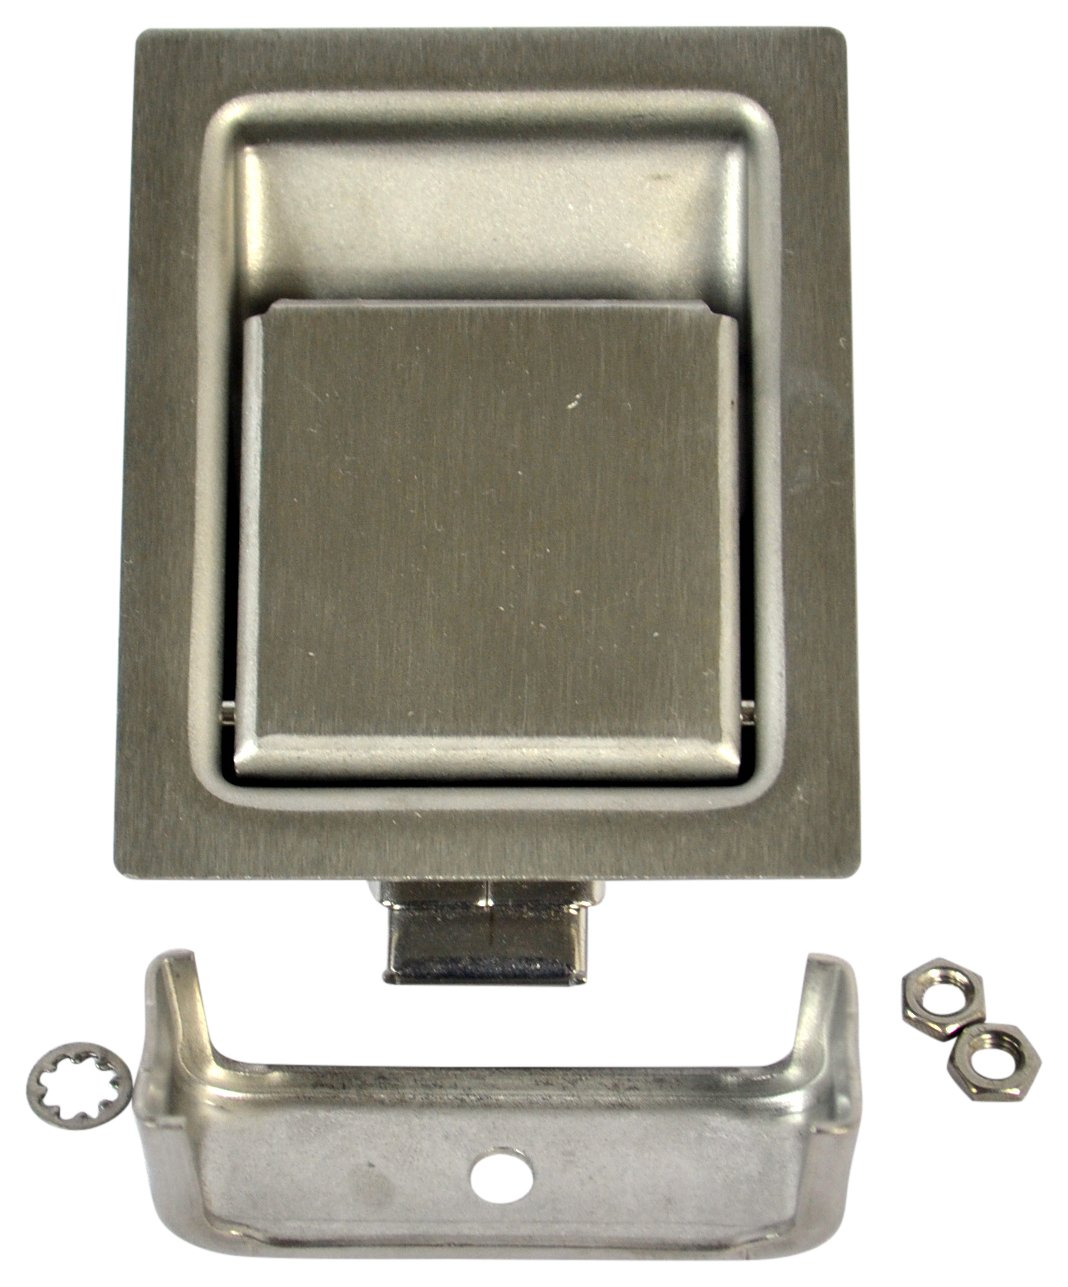 Southco Inc 64-21-10 Flush Paddle Latch 2.81 Long x 2.19 W Installation Hole, Southco Flush Paddle Latches (Pack of 4)